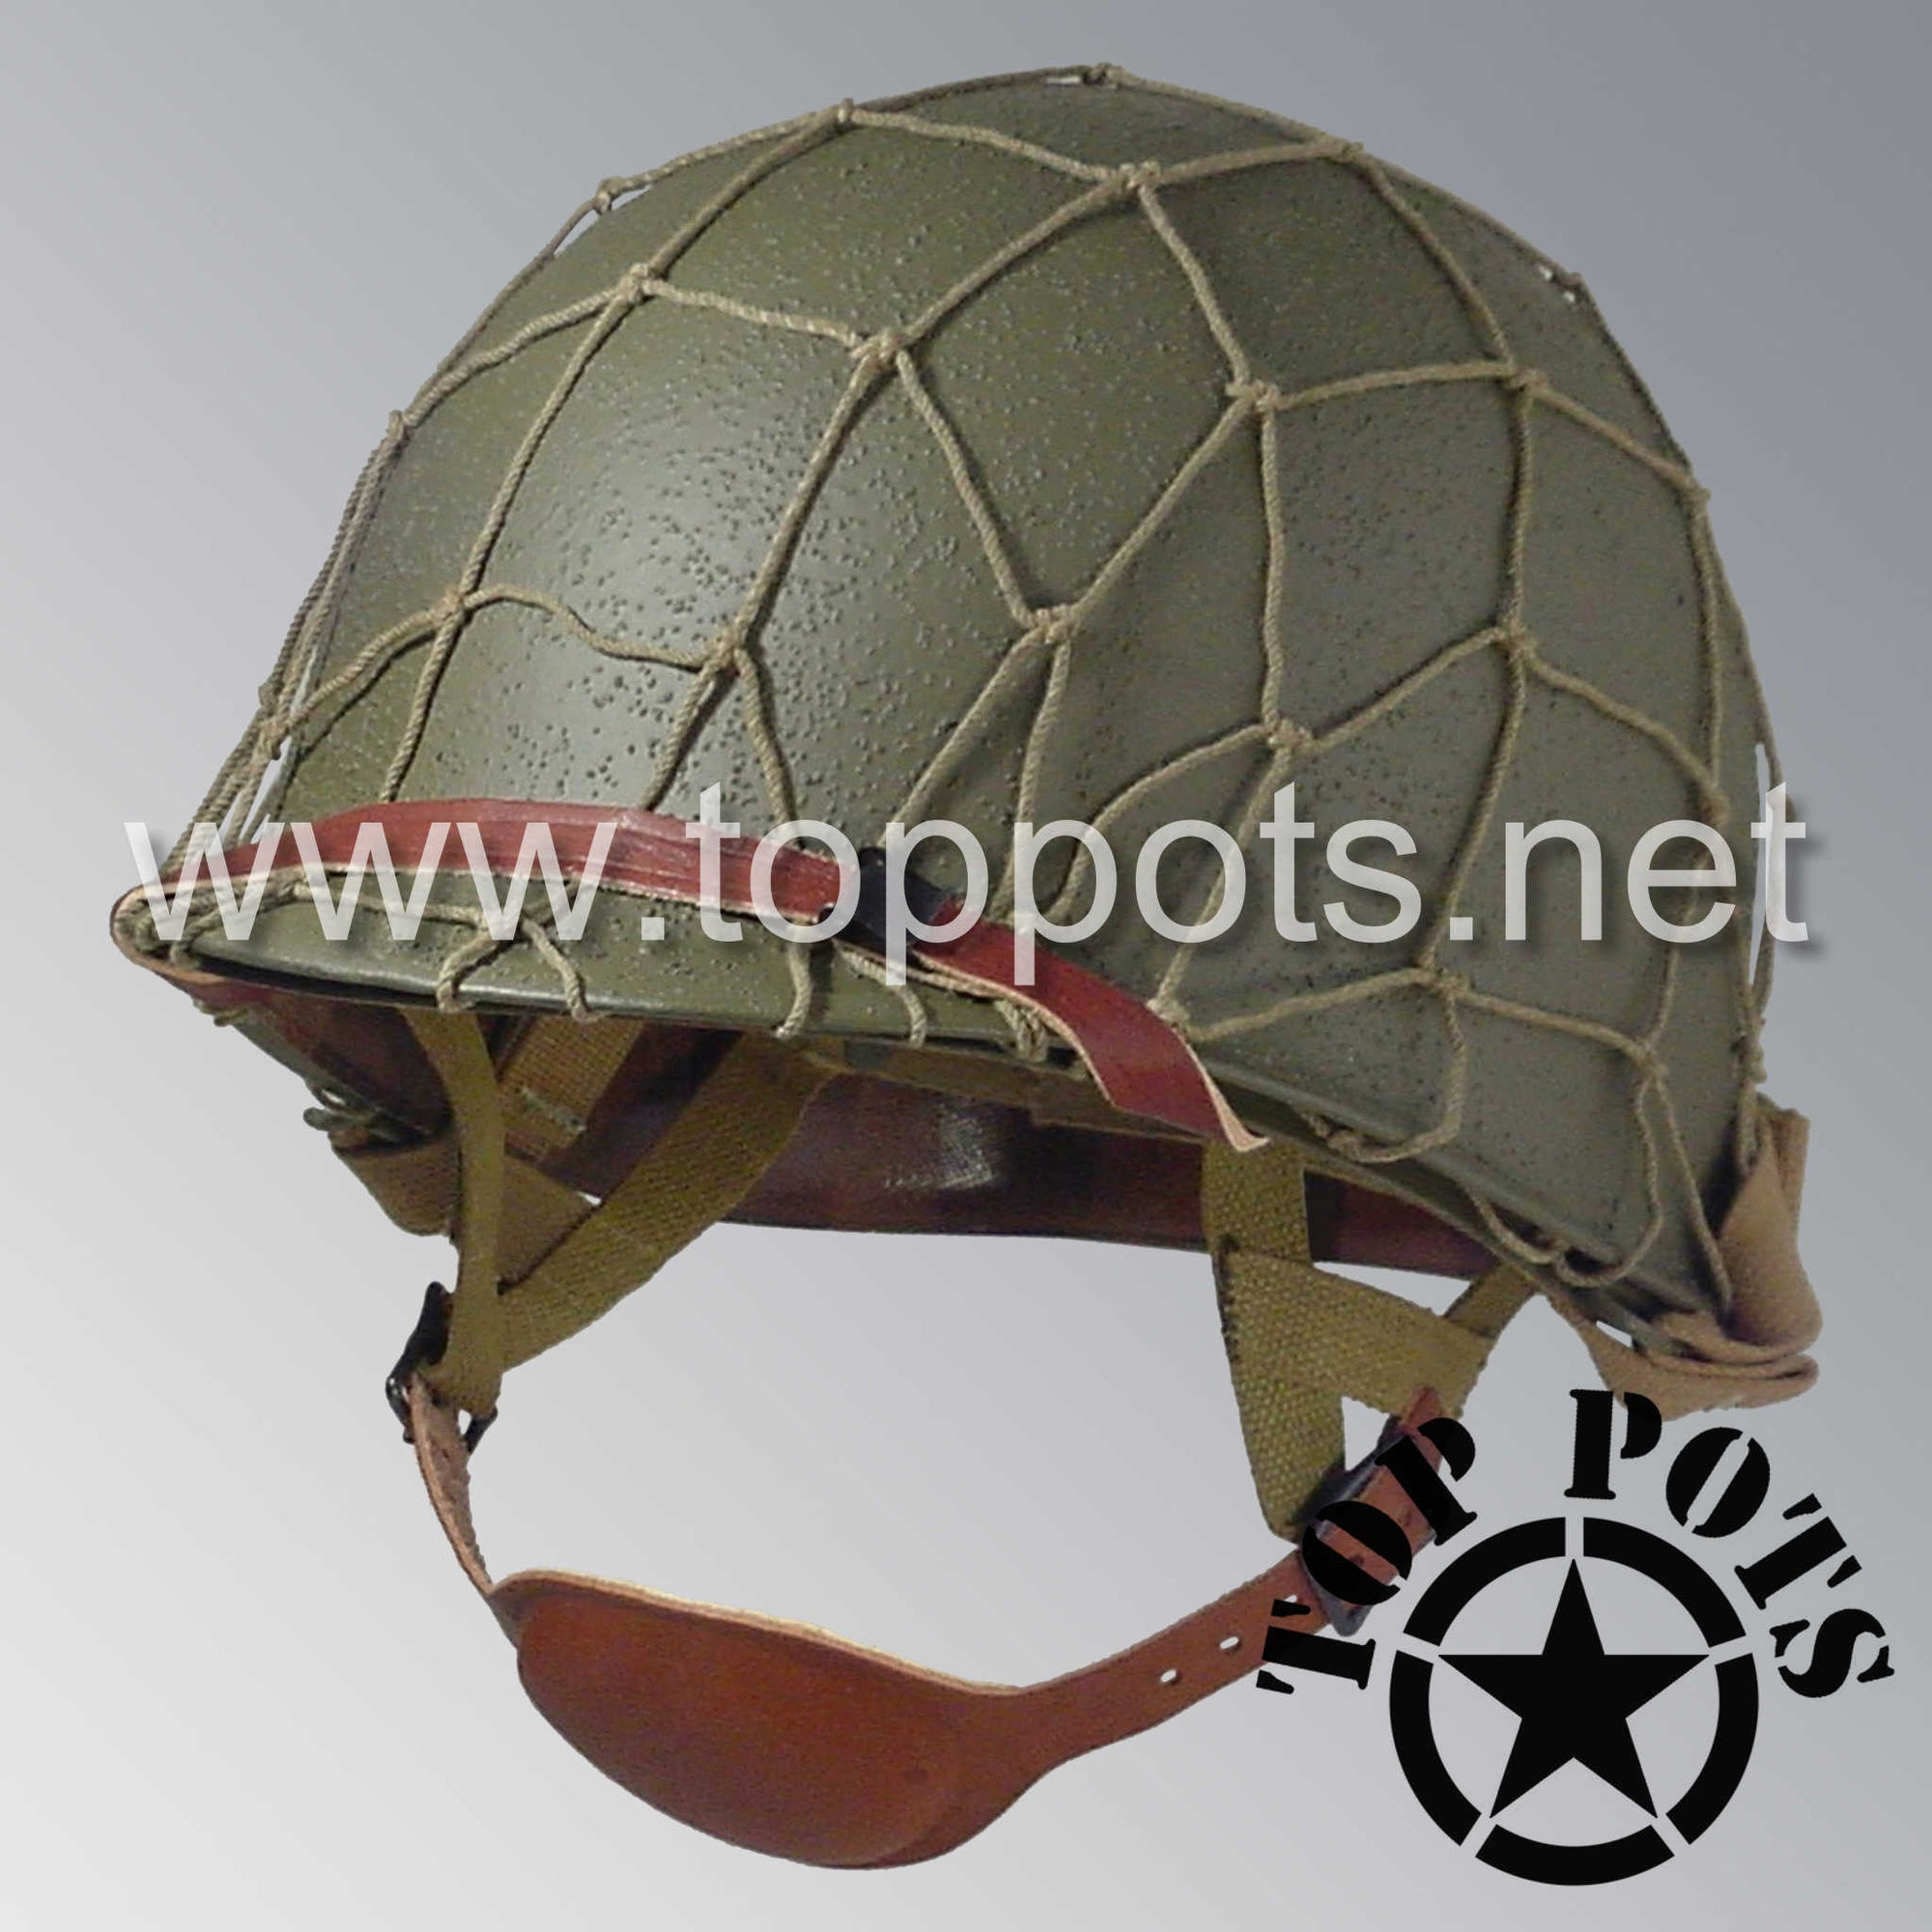 Image 1 of WWII US Army Restored Original M1C Paratrooper Airborne Helmet Swivel Bale Shell and Liner with Large Cargo Net